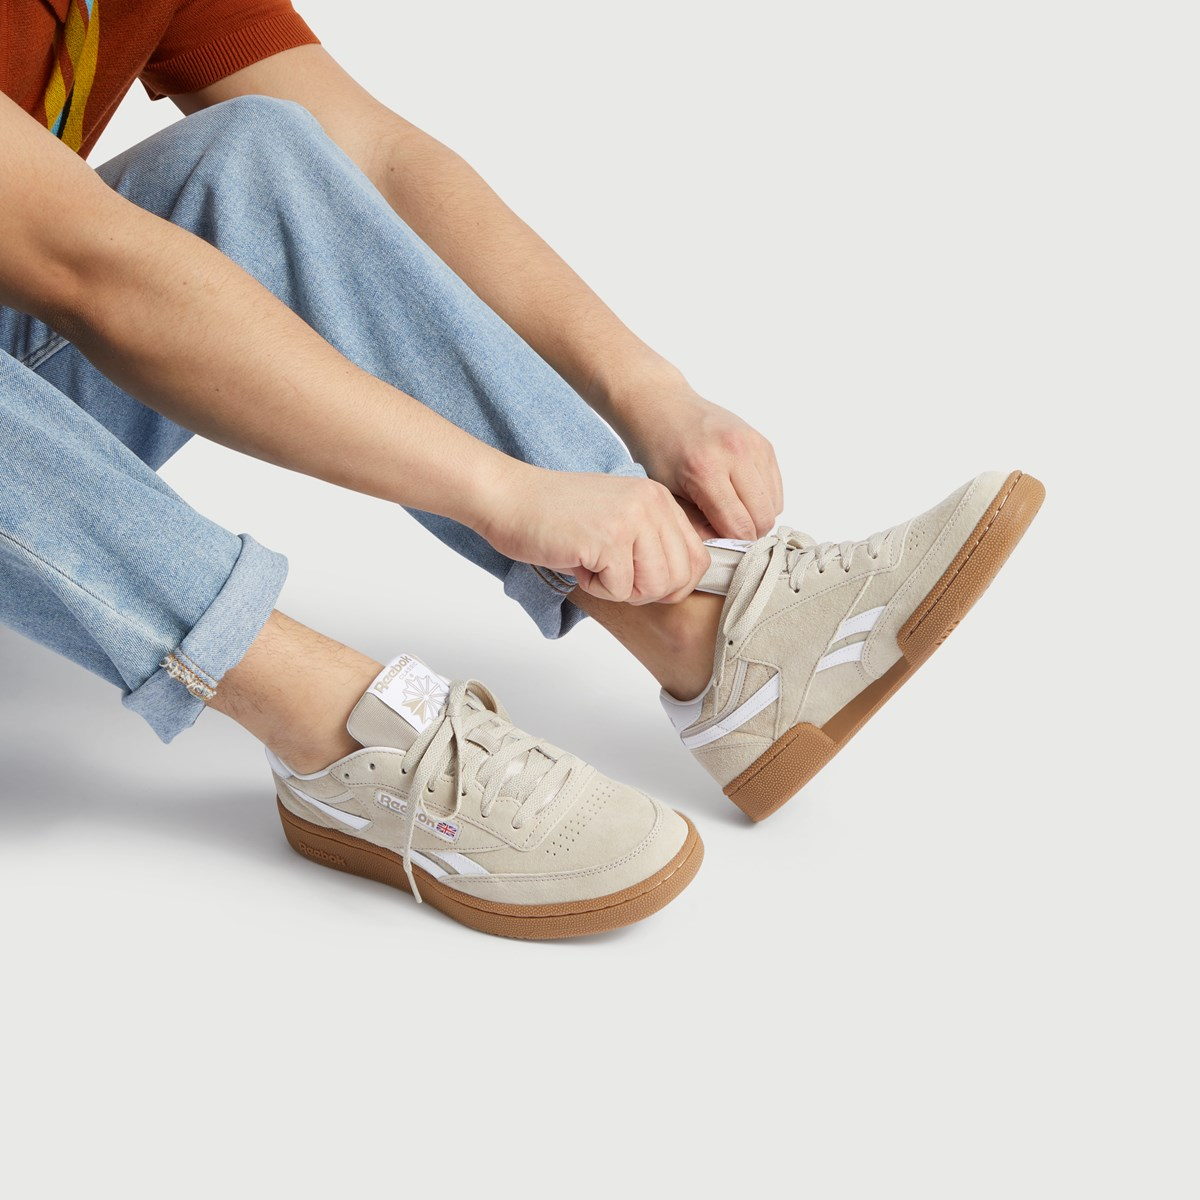 Men's Revenge Plus MU Sneaker in Beige